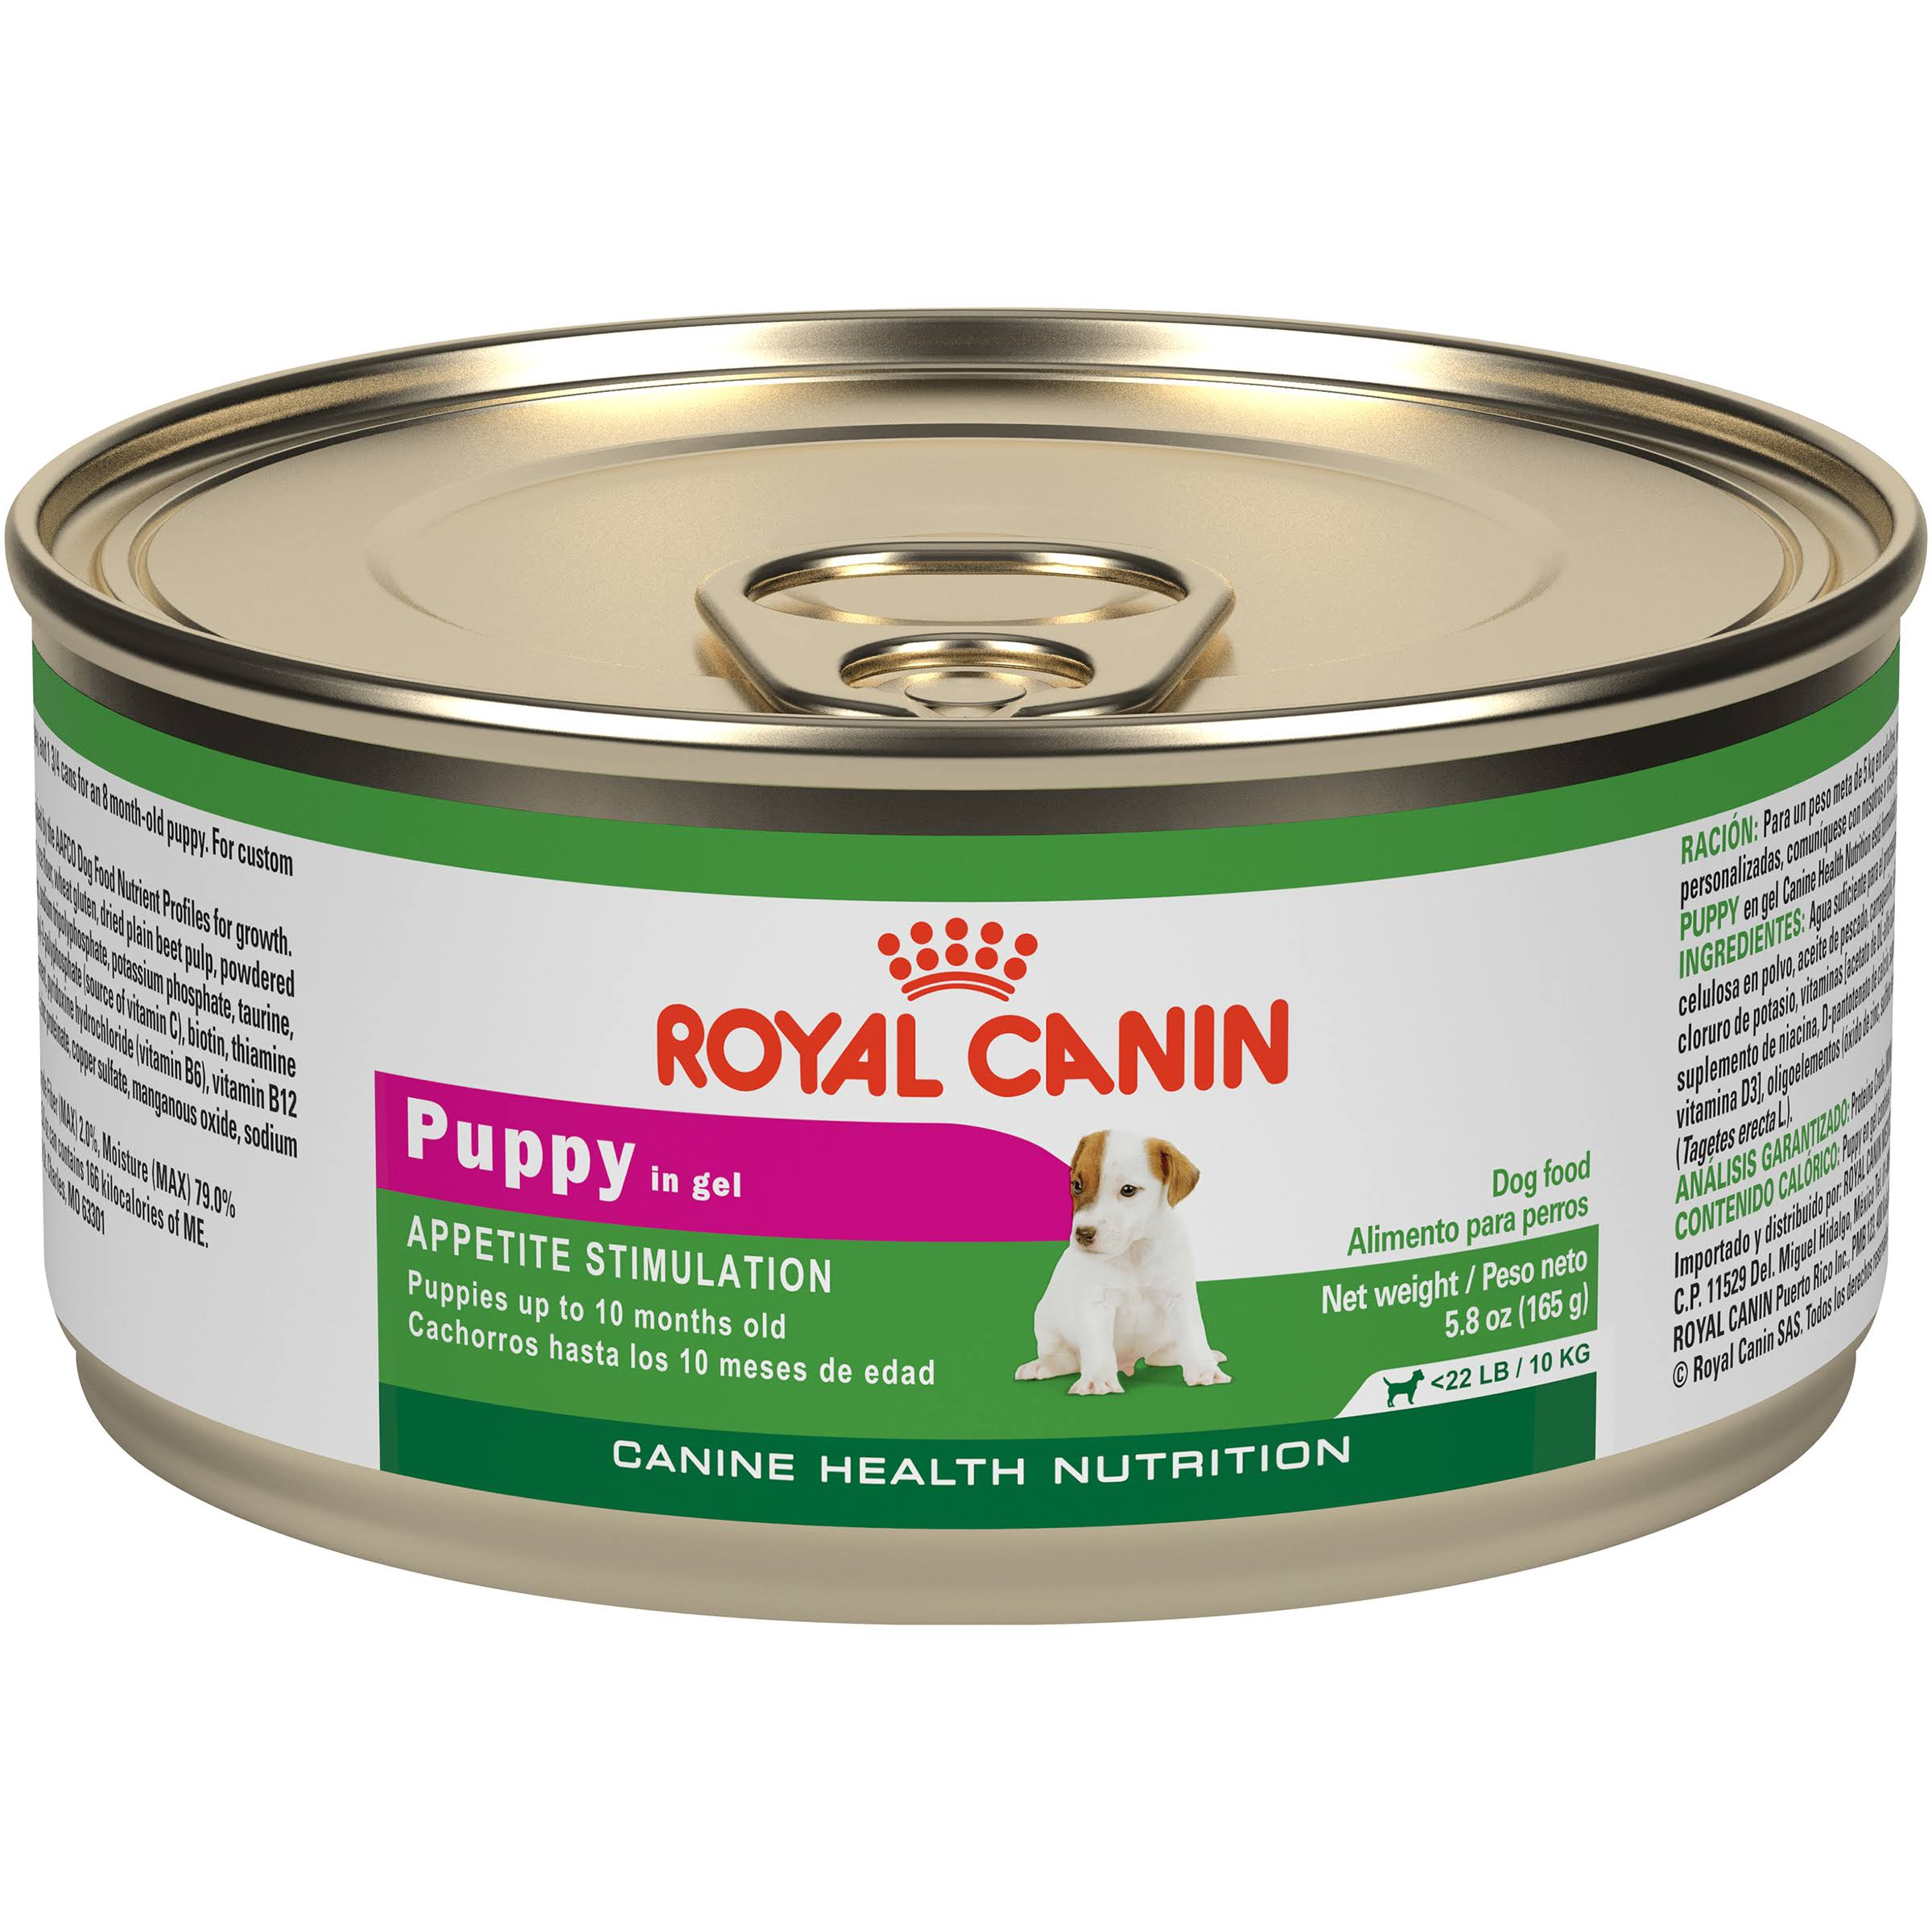 Royal Canin Dog Food - 5.8 oz can